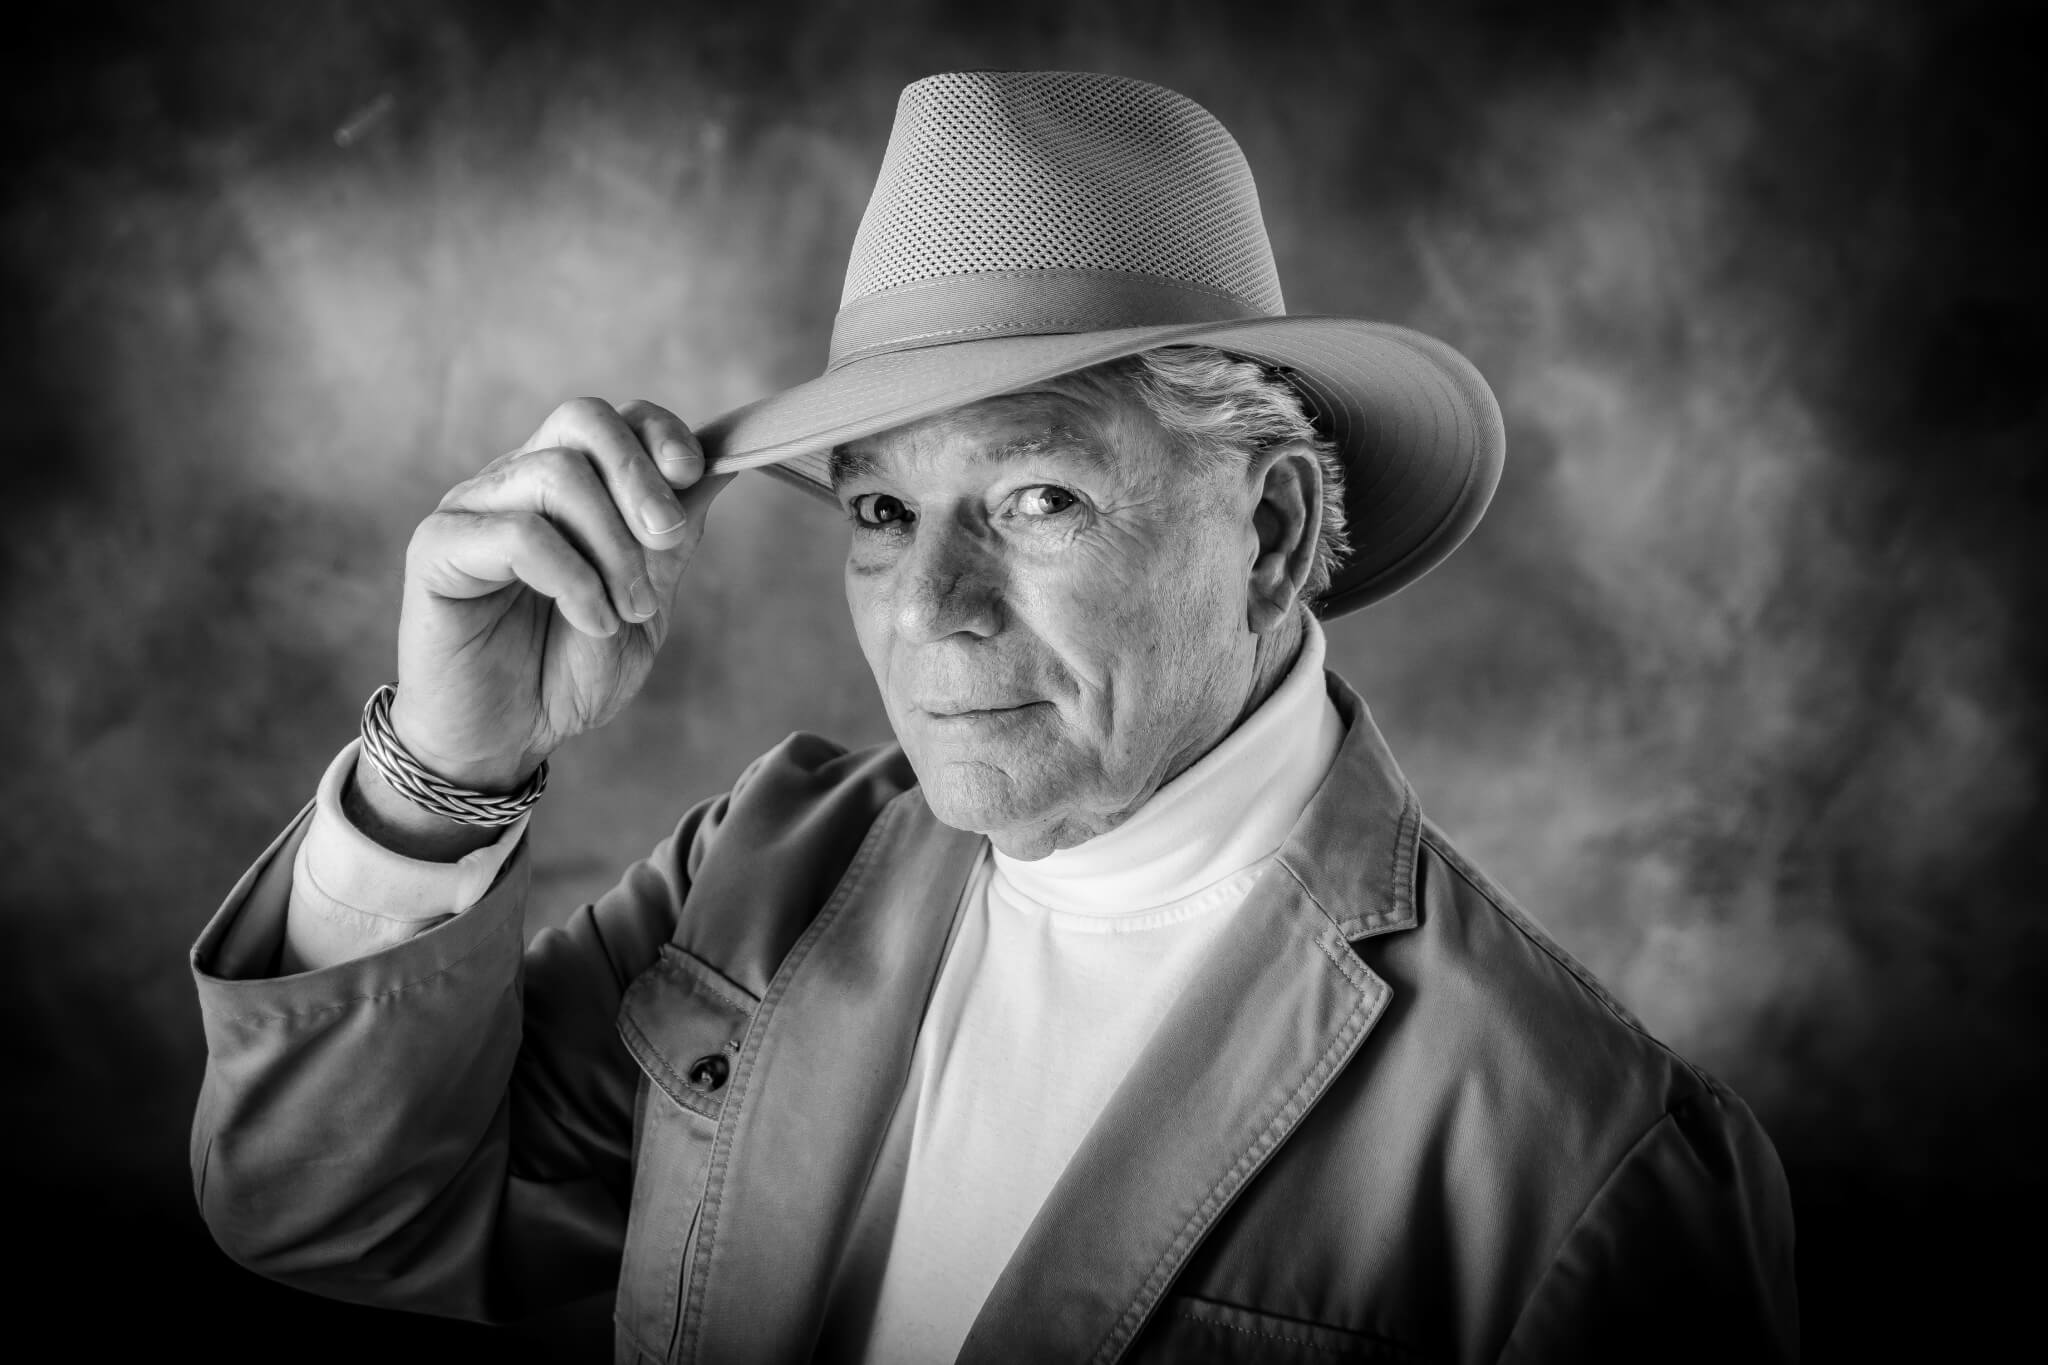 A picture of a man wearing a cowboy hat